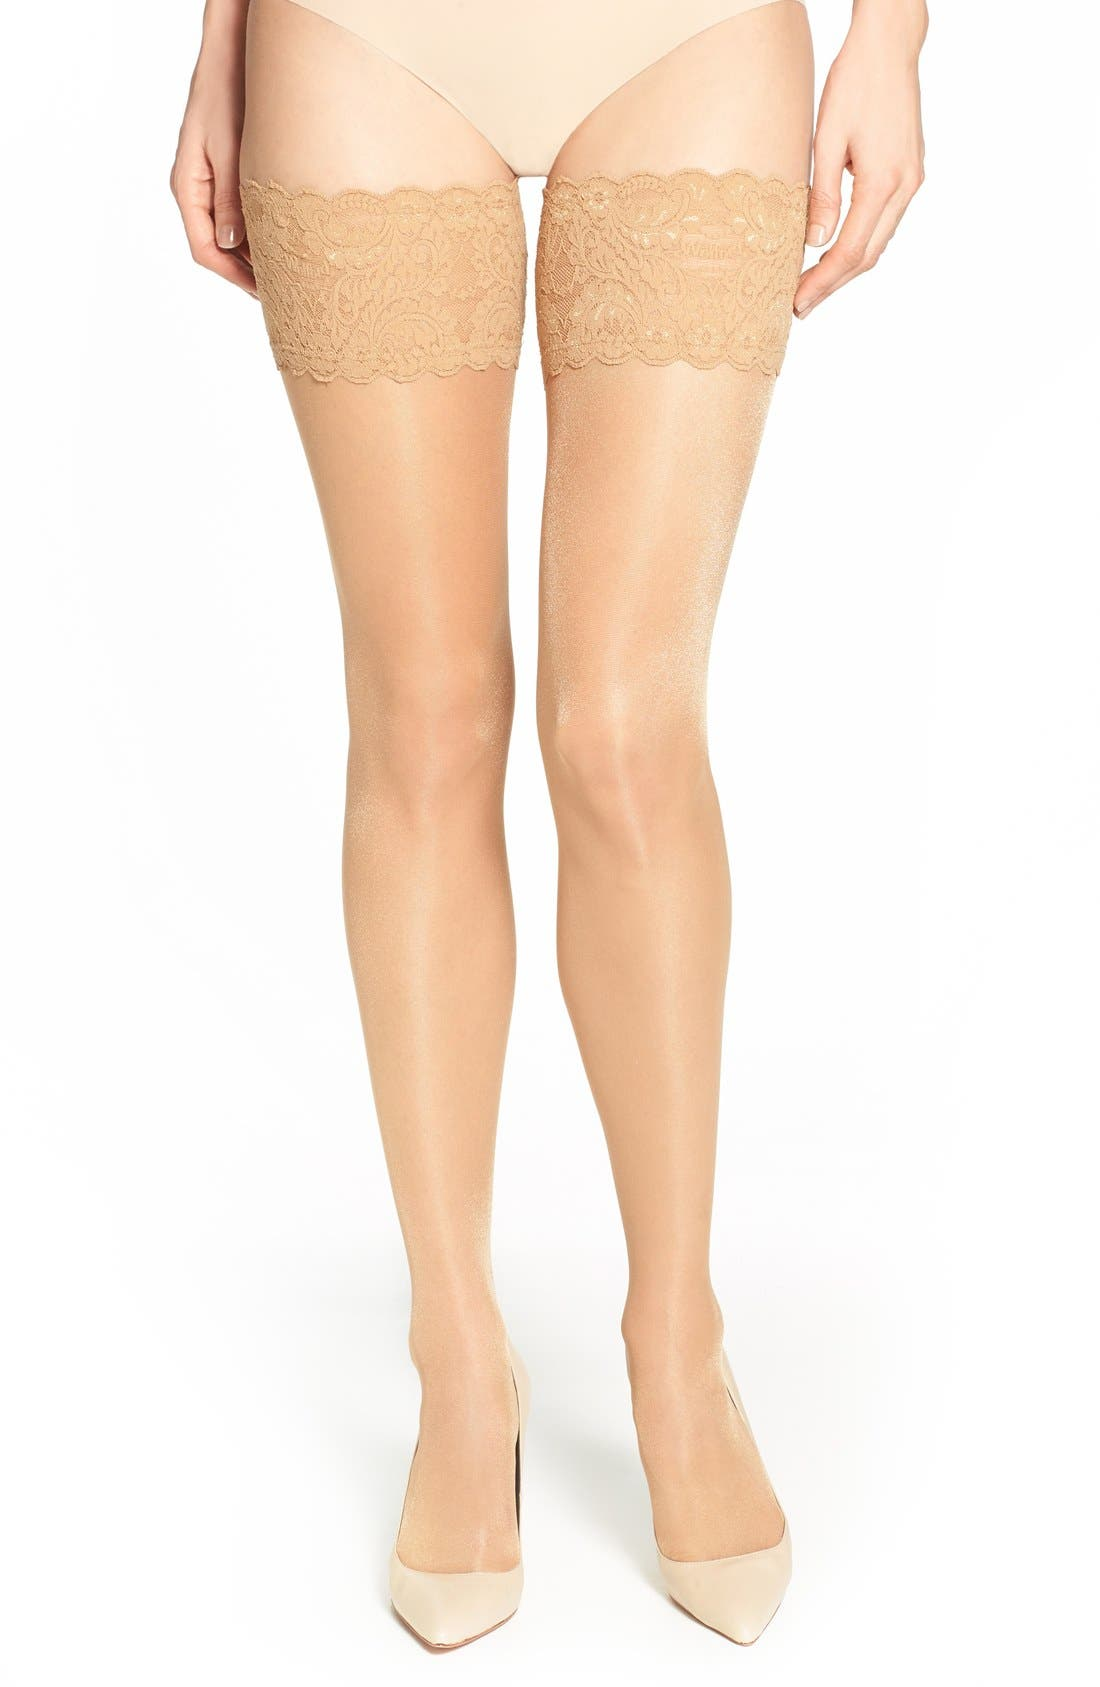 WOLFORD Satin Touch Stay-Up Thigh-Highs, Gobi